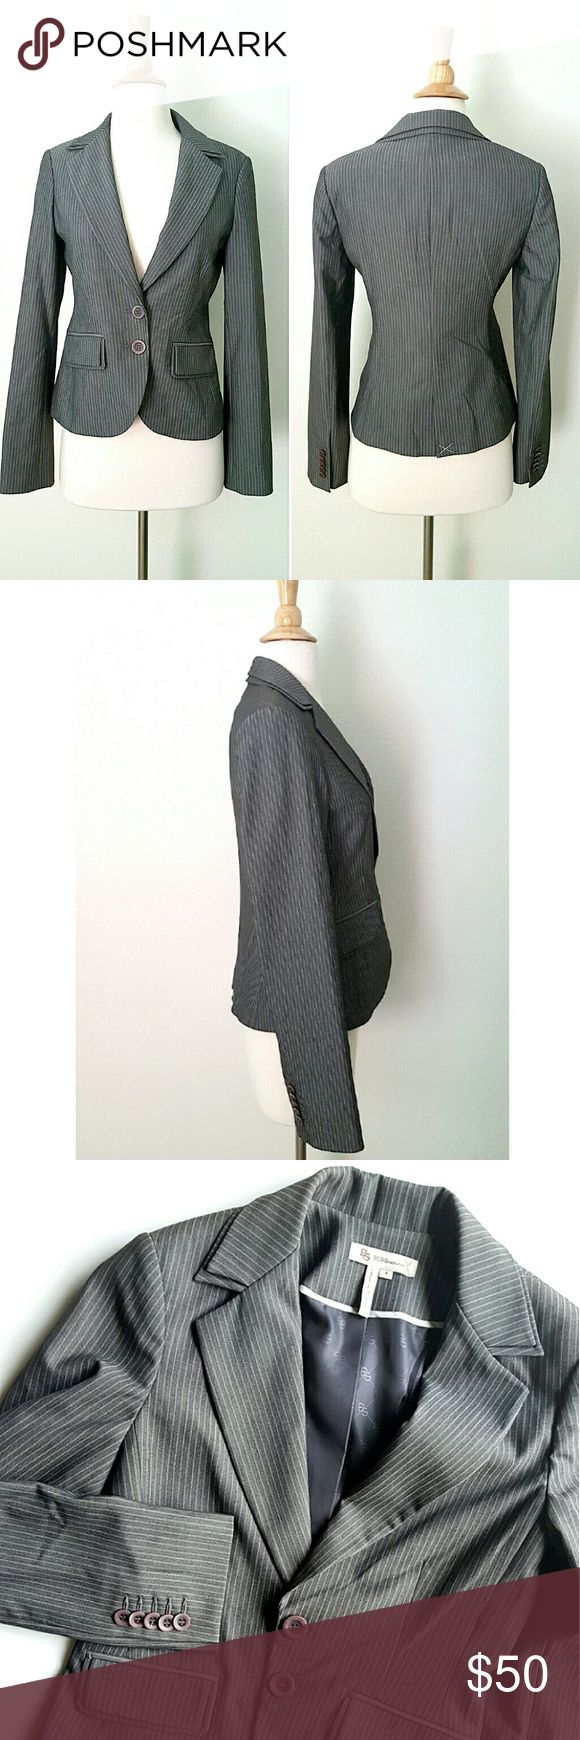 "BCBGeneration Blazer Gray striped blazer jacket with double collar. Button front,  fully lined, two flip pockets with double flips, back slit. Size says 8 but if fits like a 4, pls refer to measurements: 15.5"" shoulder to shoulder,  17.5"" armpit to armpit,  15"" waist,  21.5"" long shoulder to bottom hem,  sleeves are 25"" long.  NWOT, never worn. Pockets and back slit are still stitched. BCBGeneration Jackets & Coats Blazers"